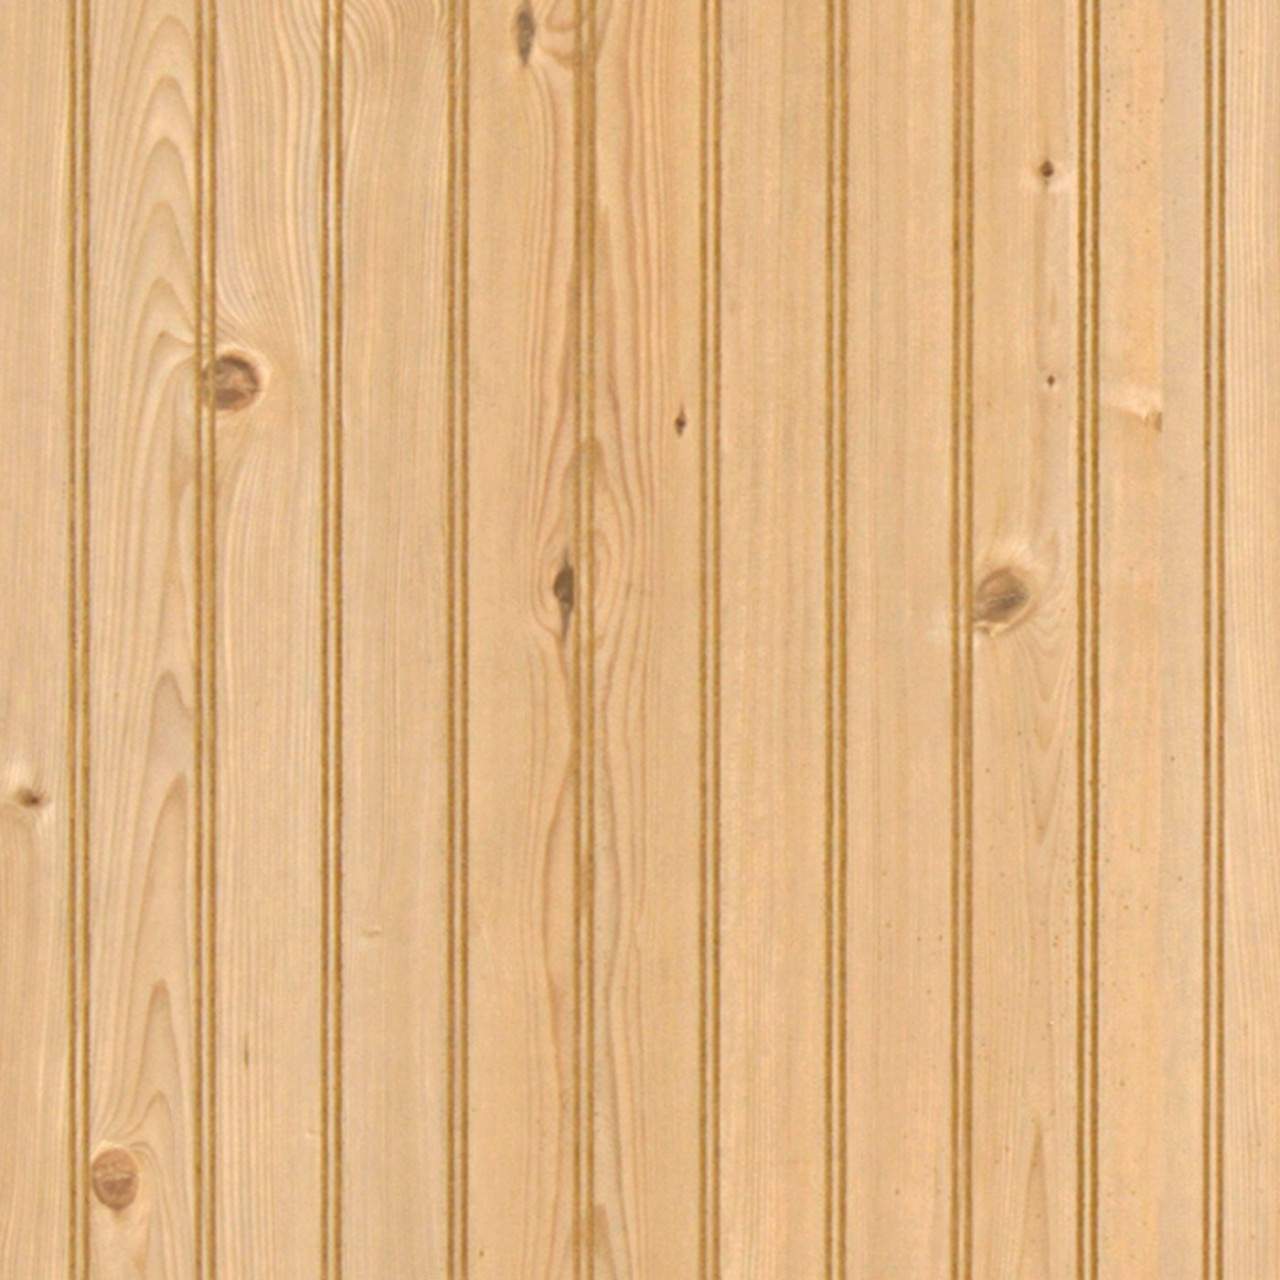 Very Impressive portraiture of Paneling Beadboard Rustique Pine Beaded Wainscot Paneling with #BB6510 color and 1280x1280 pixels